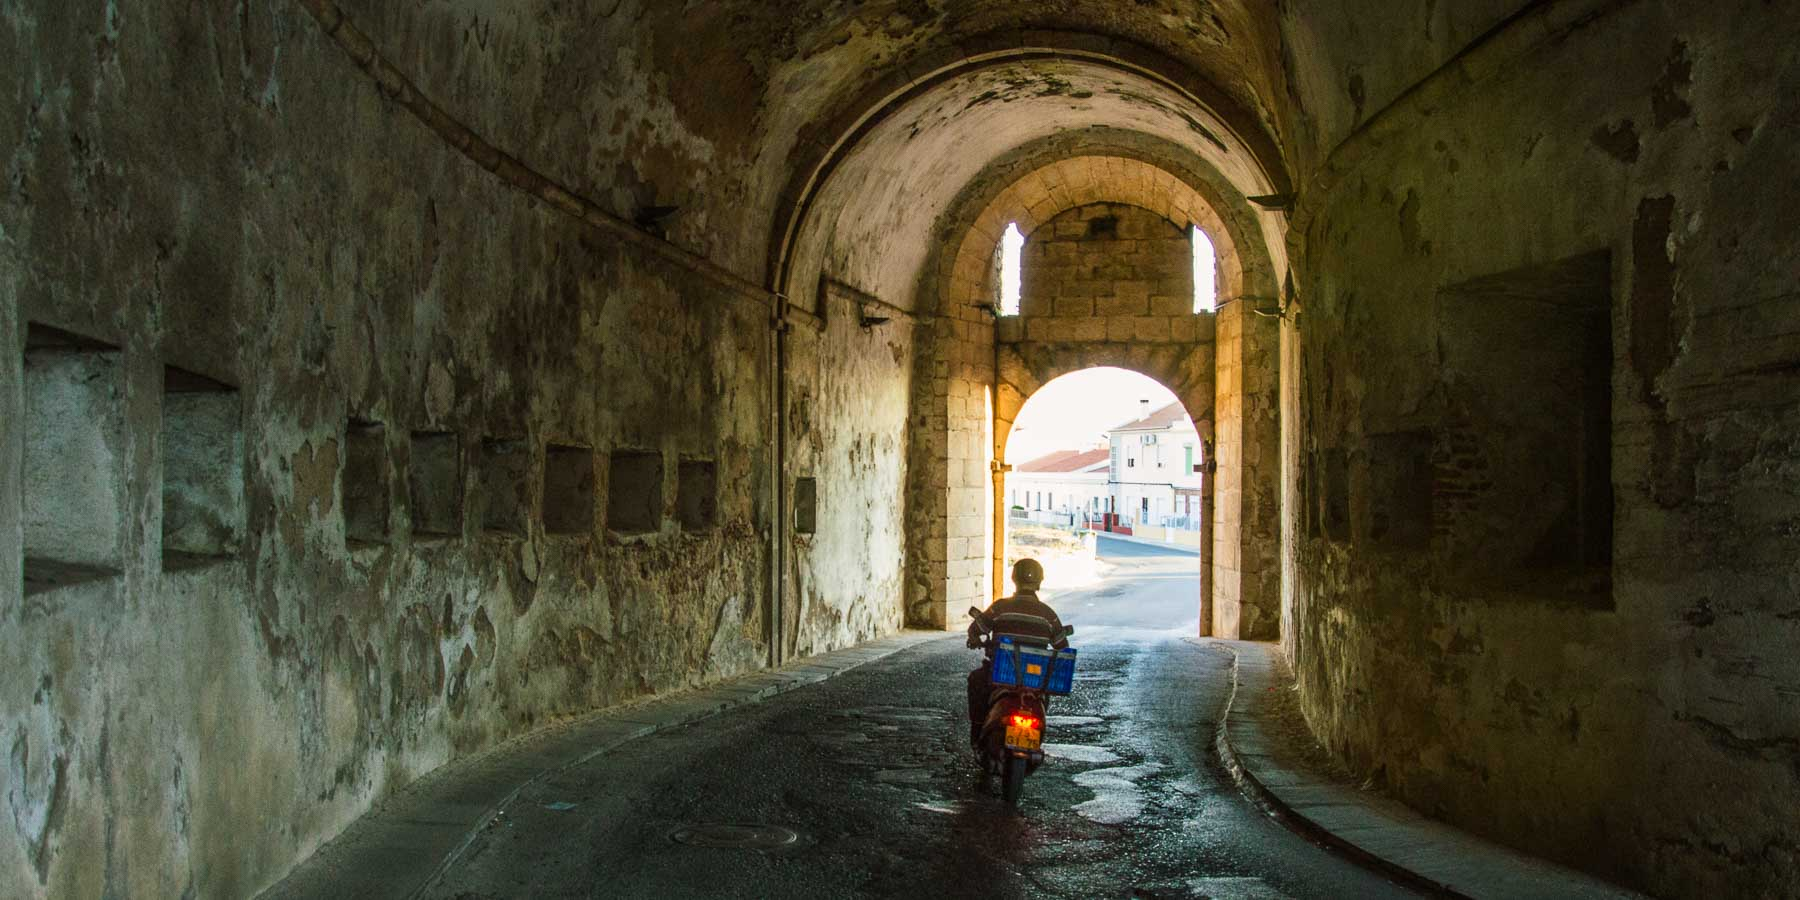 View of the tunnel through an old city wall.